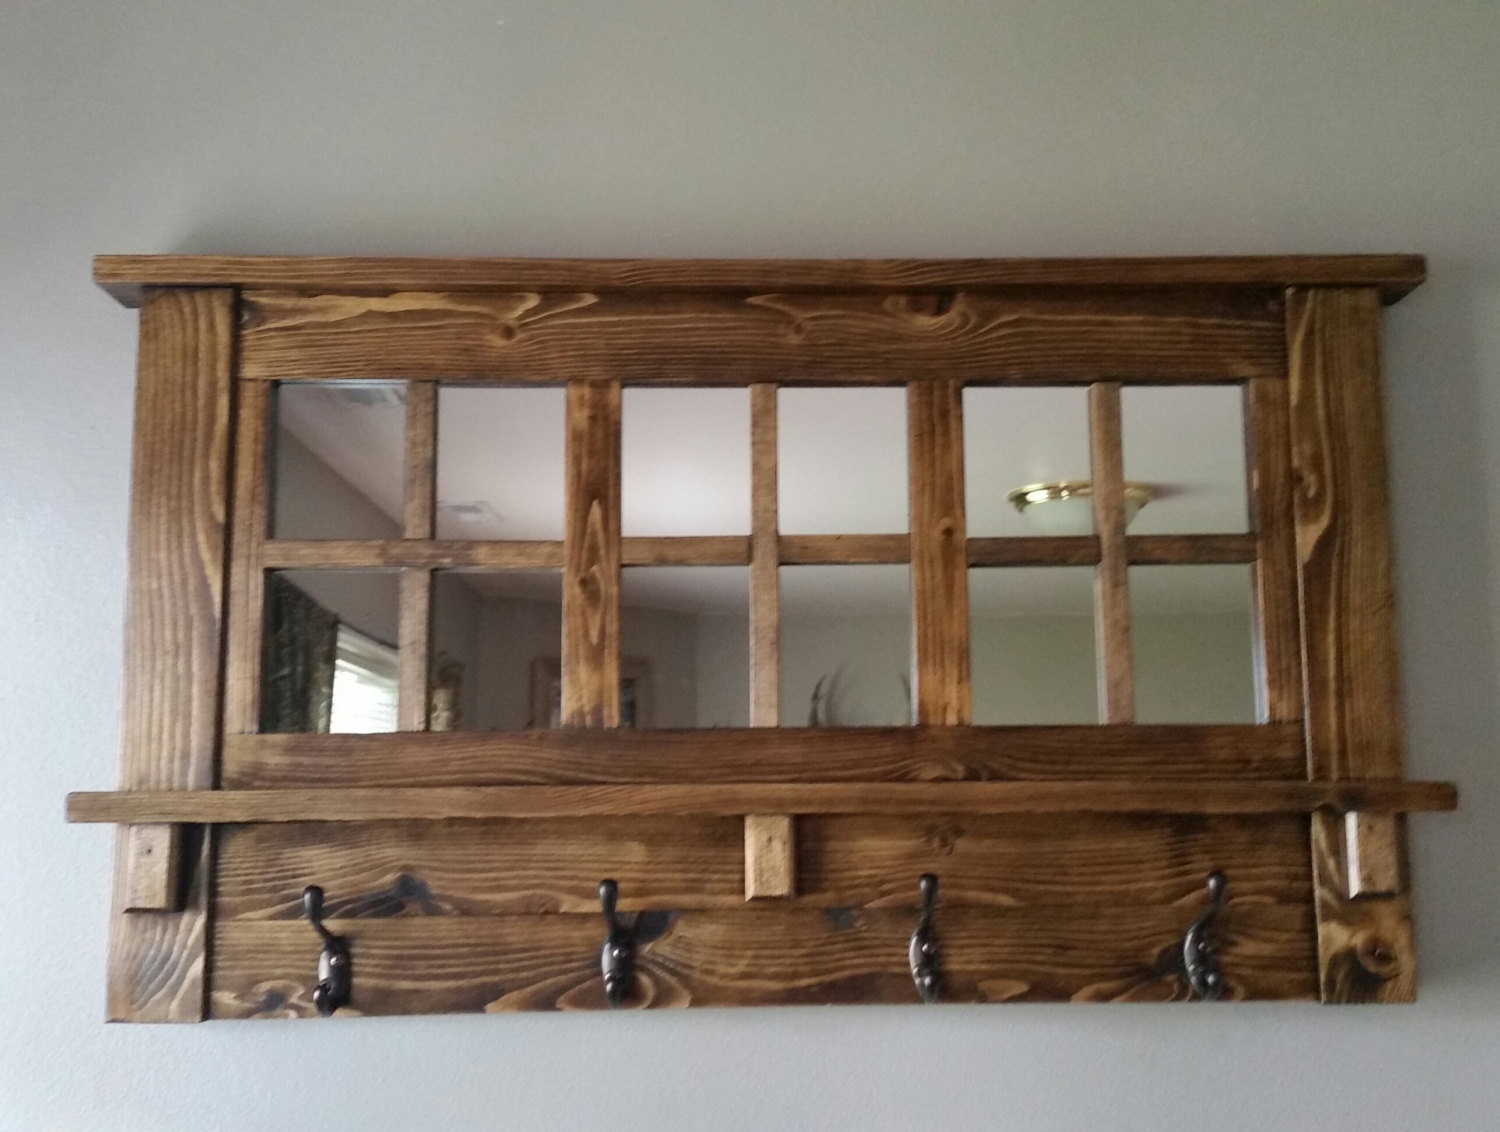 Rustic wood coat racks 17 diy stylish ideas for Miroir antique en bois